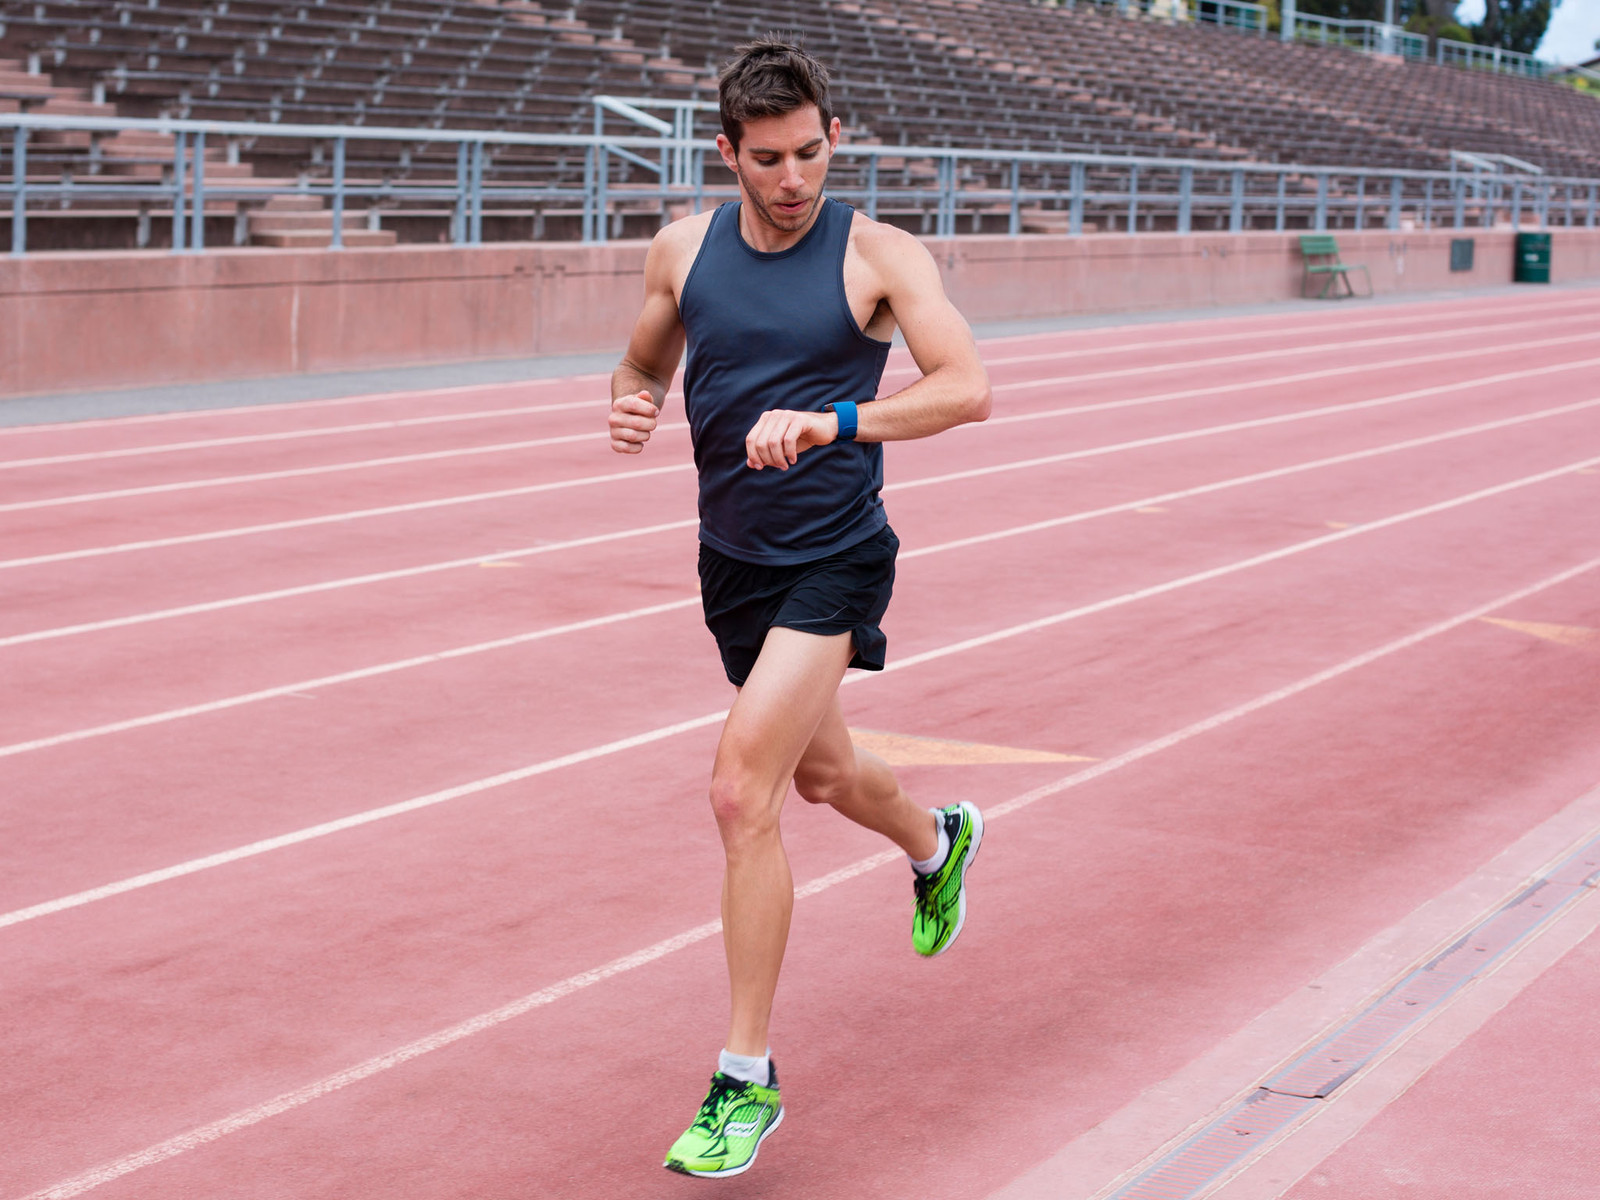 jogging-tips-for-beginners_image